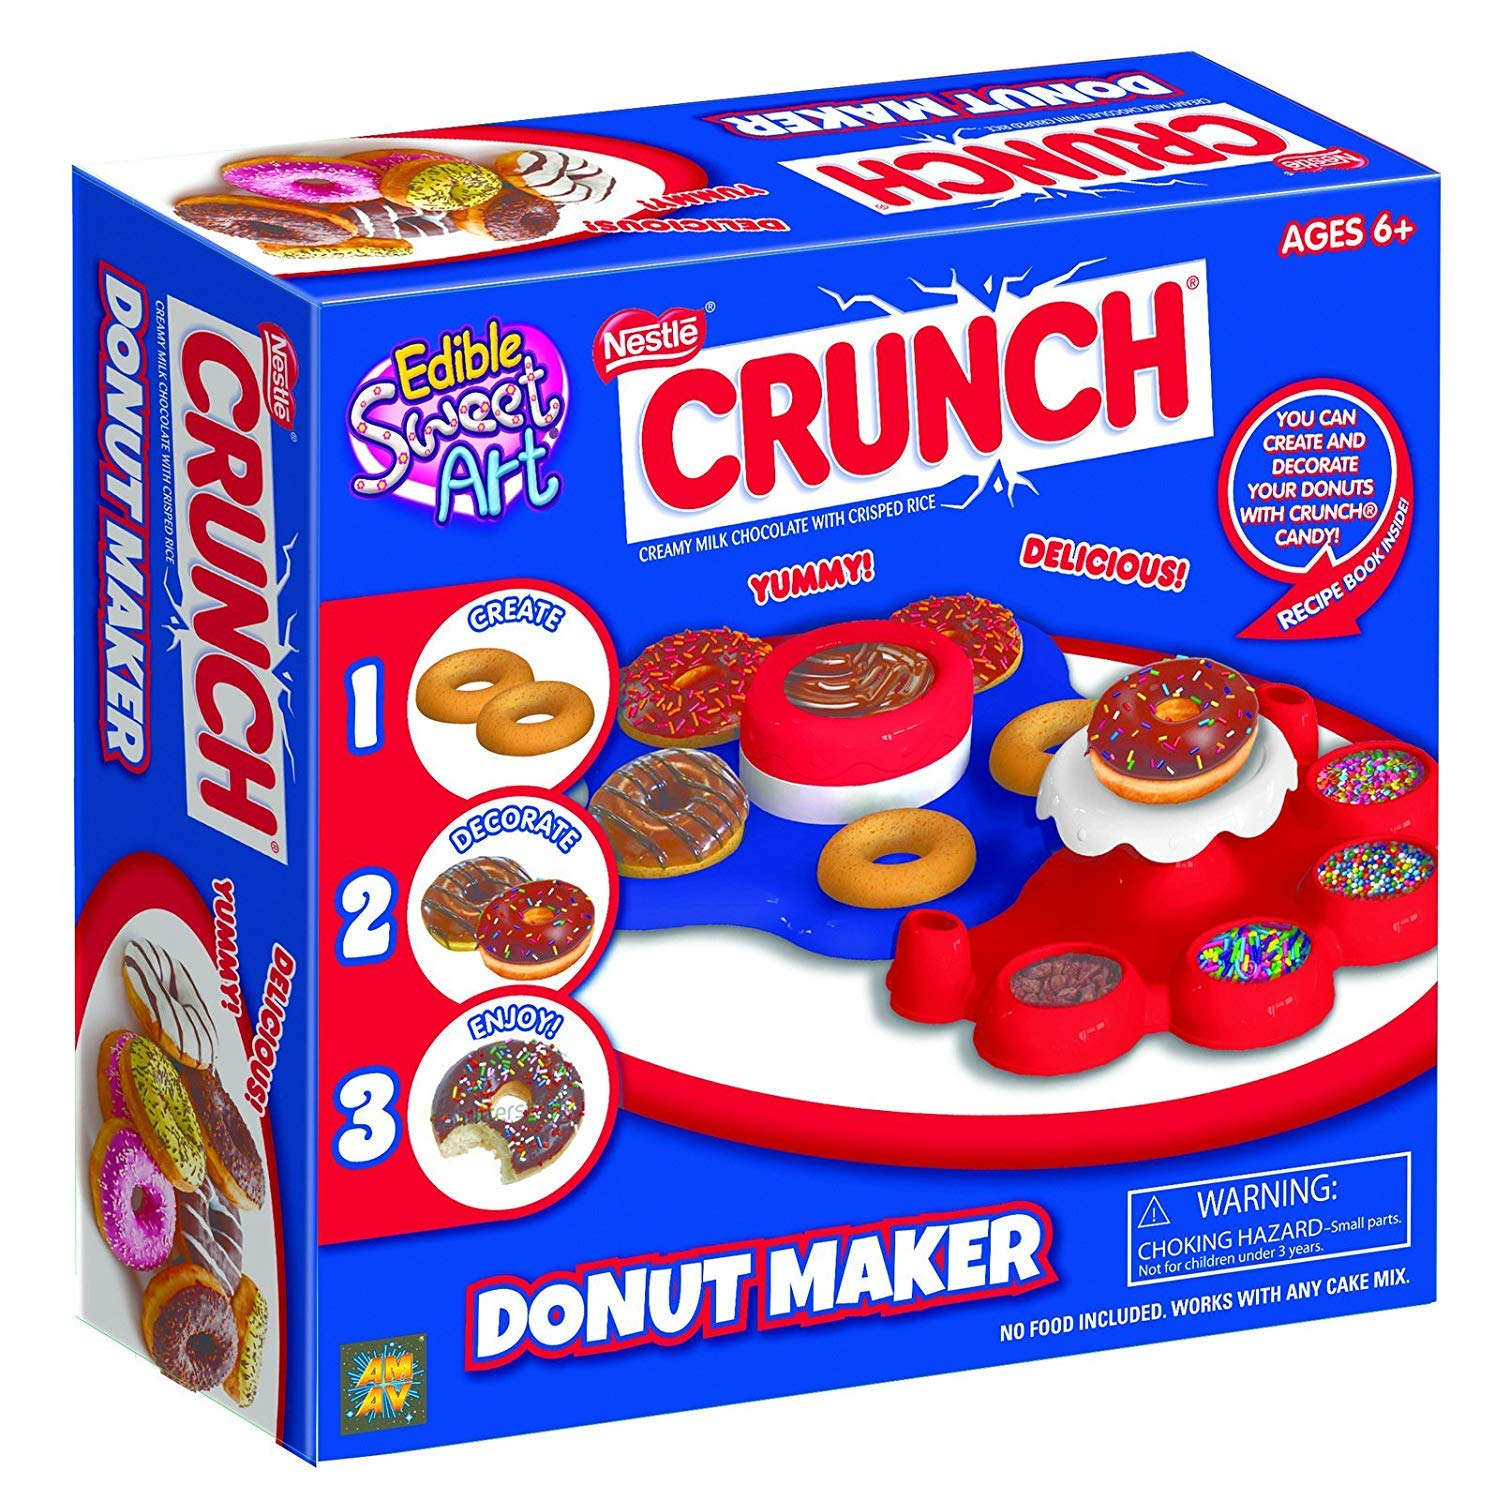 Amazon.com: Nestle Crunch Donut Maker Toy Actividad Set ...